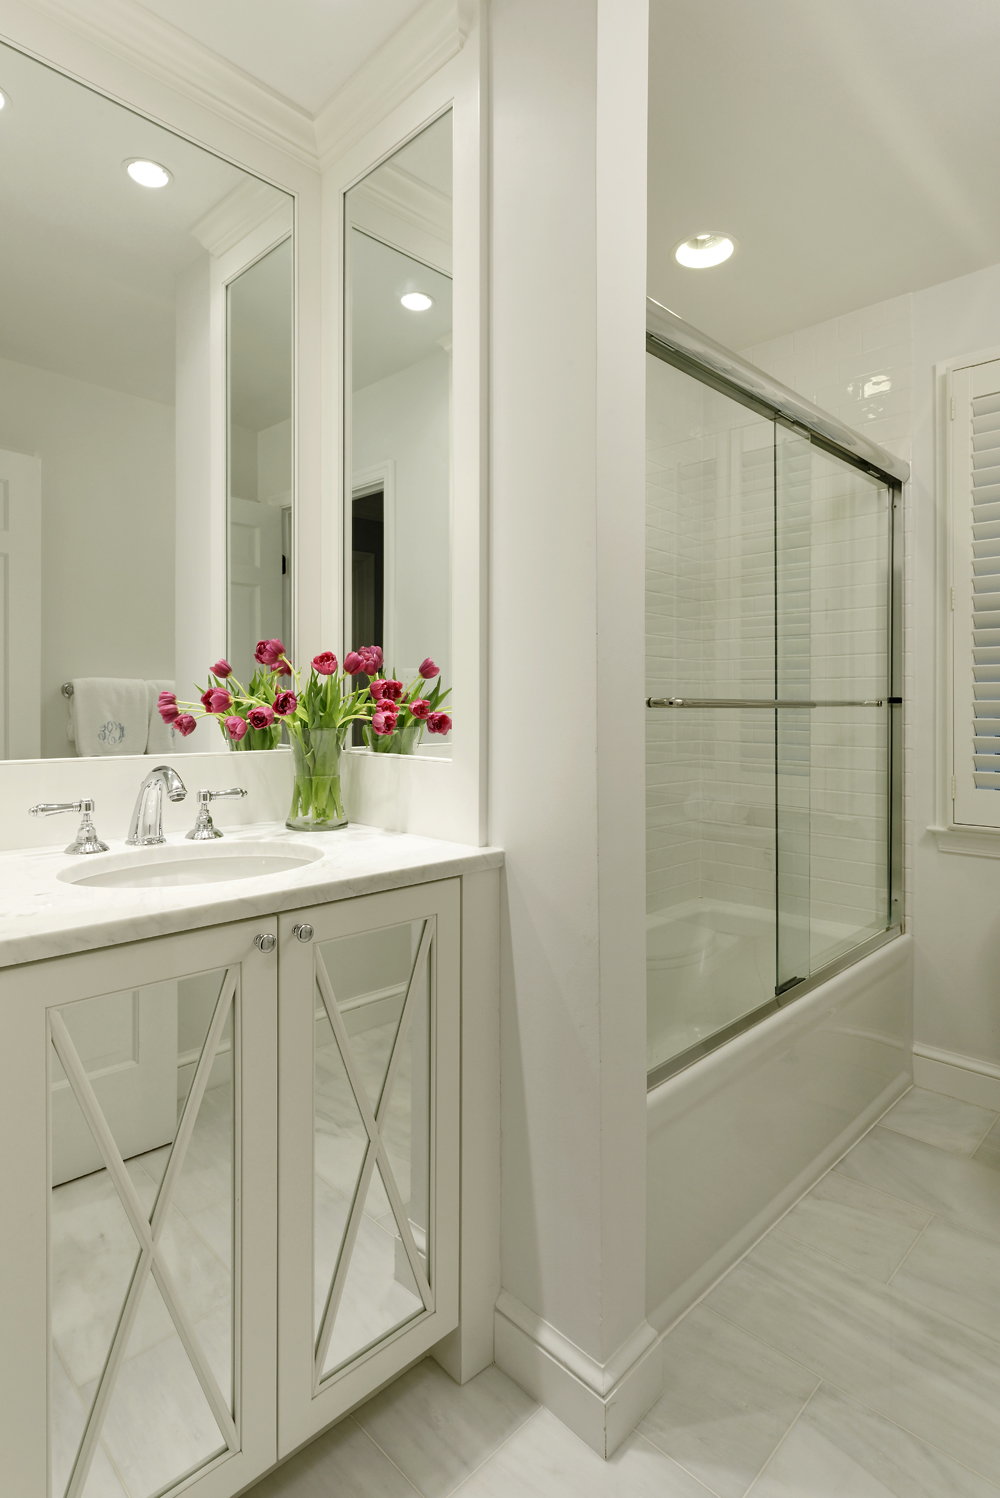 Whole House Design Build Renovation In Bethesda MD BOWA - Bathroom remodeling bethesda md